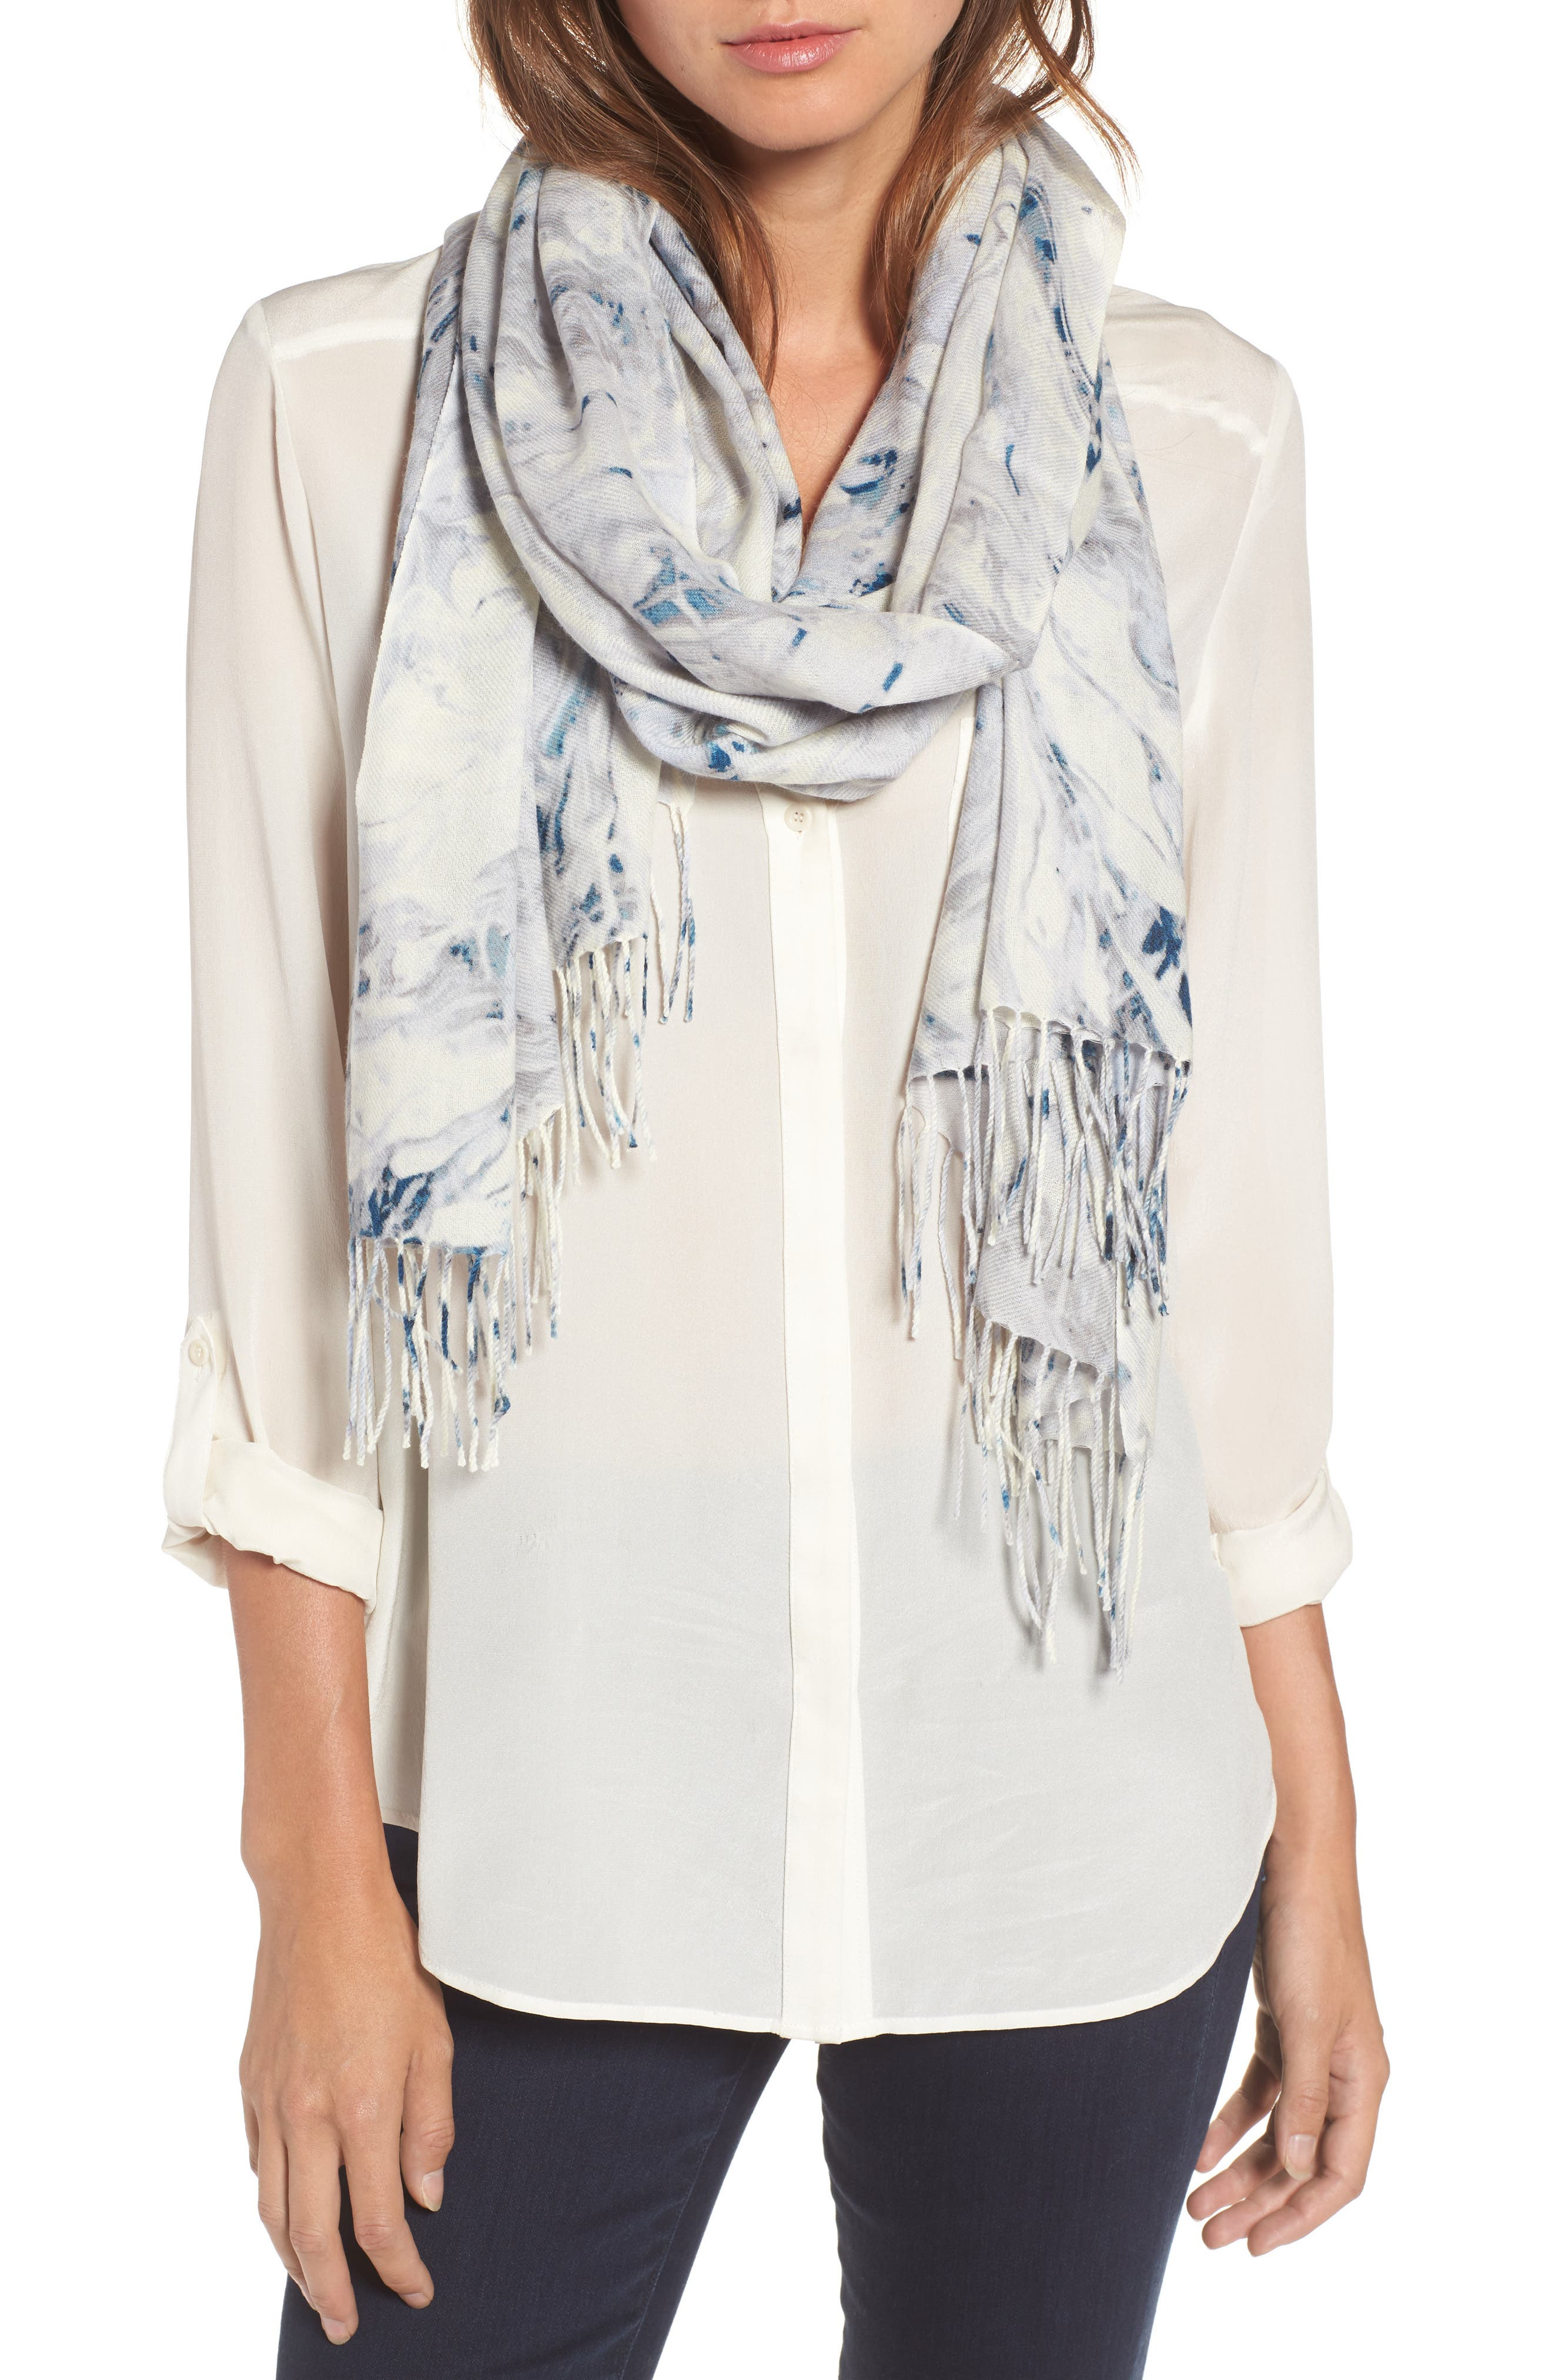 Marble Tissue Wool & Cashmere Scarf,                             Main thumbnail 1, color,                             020